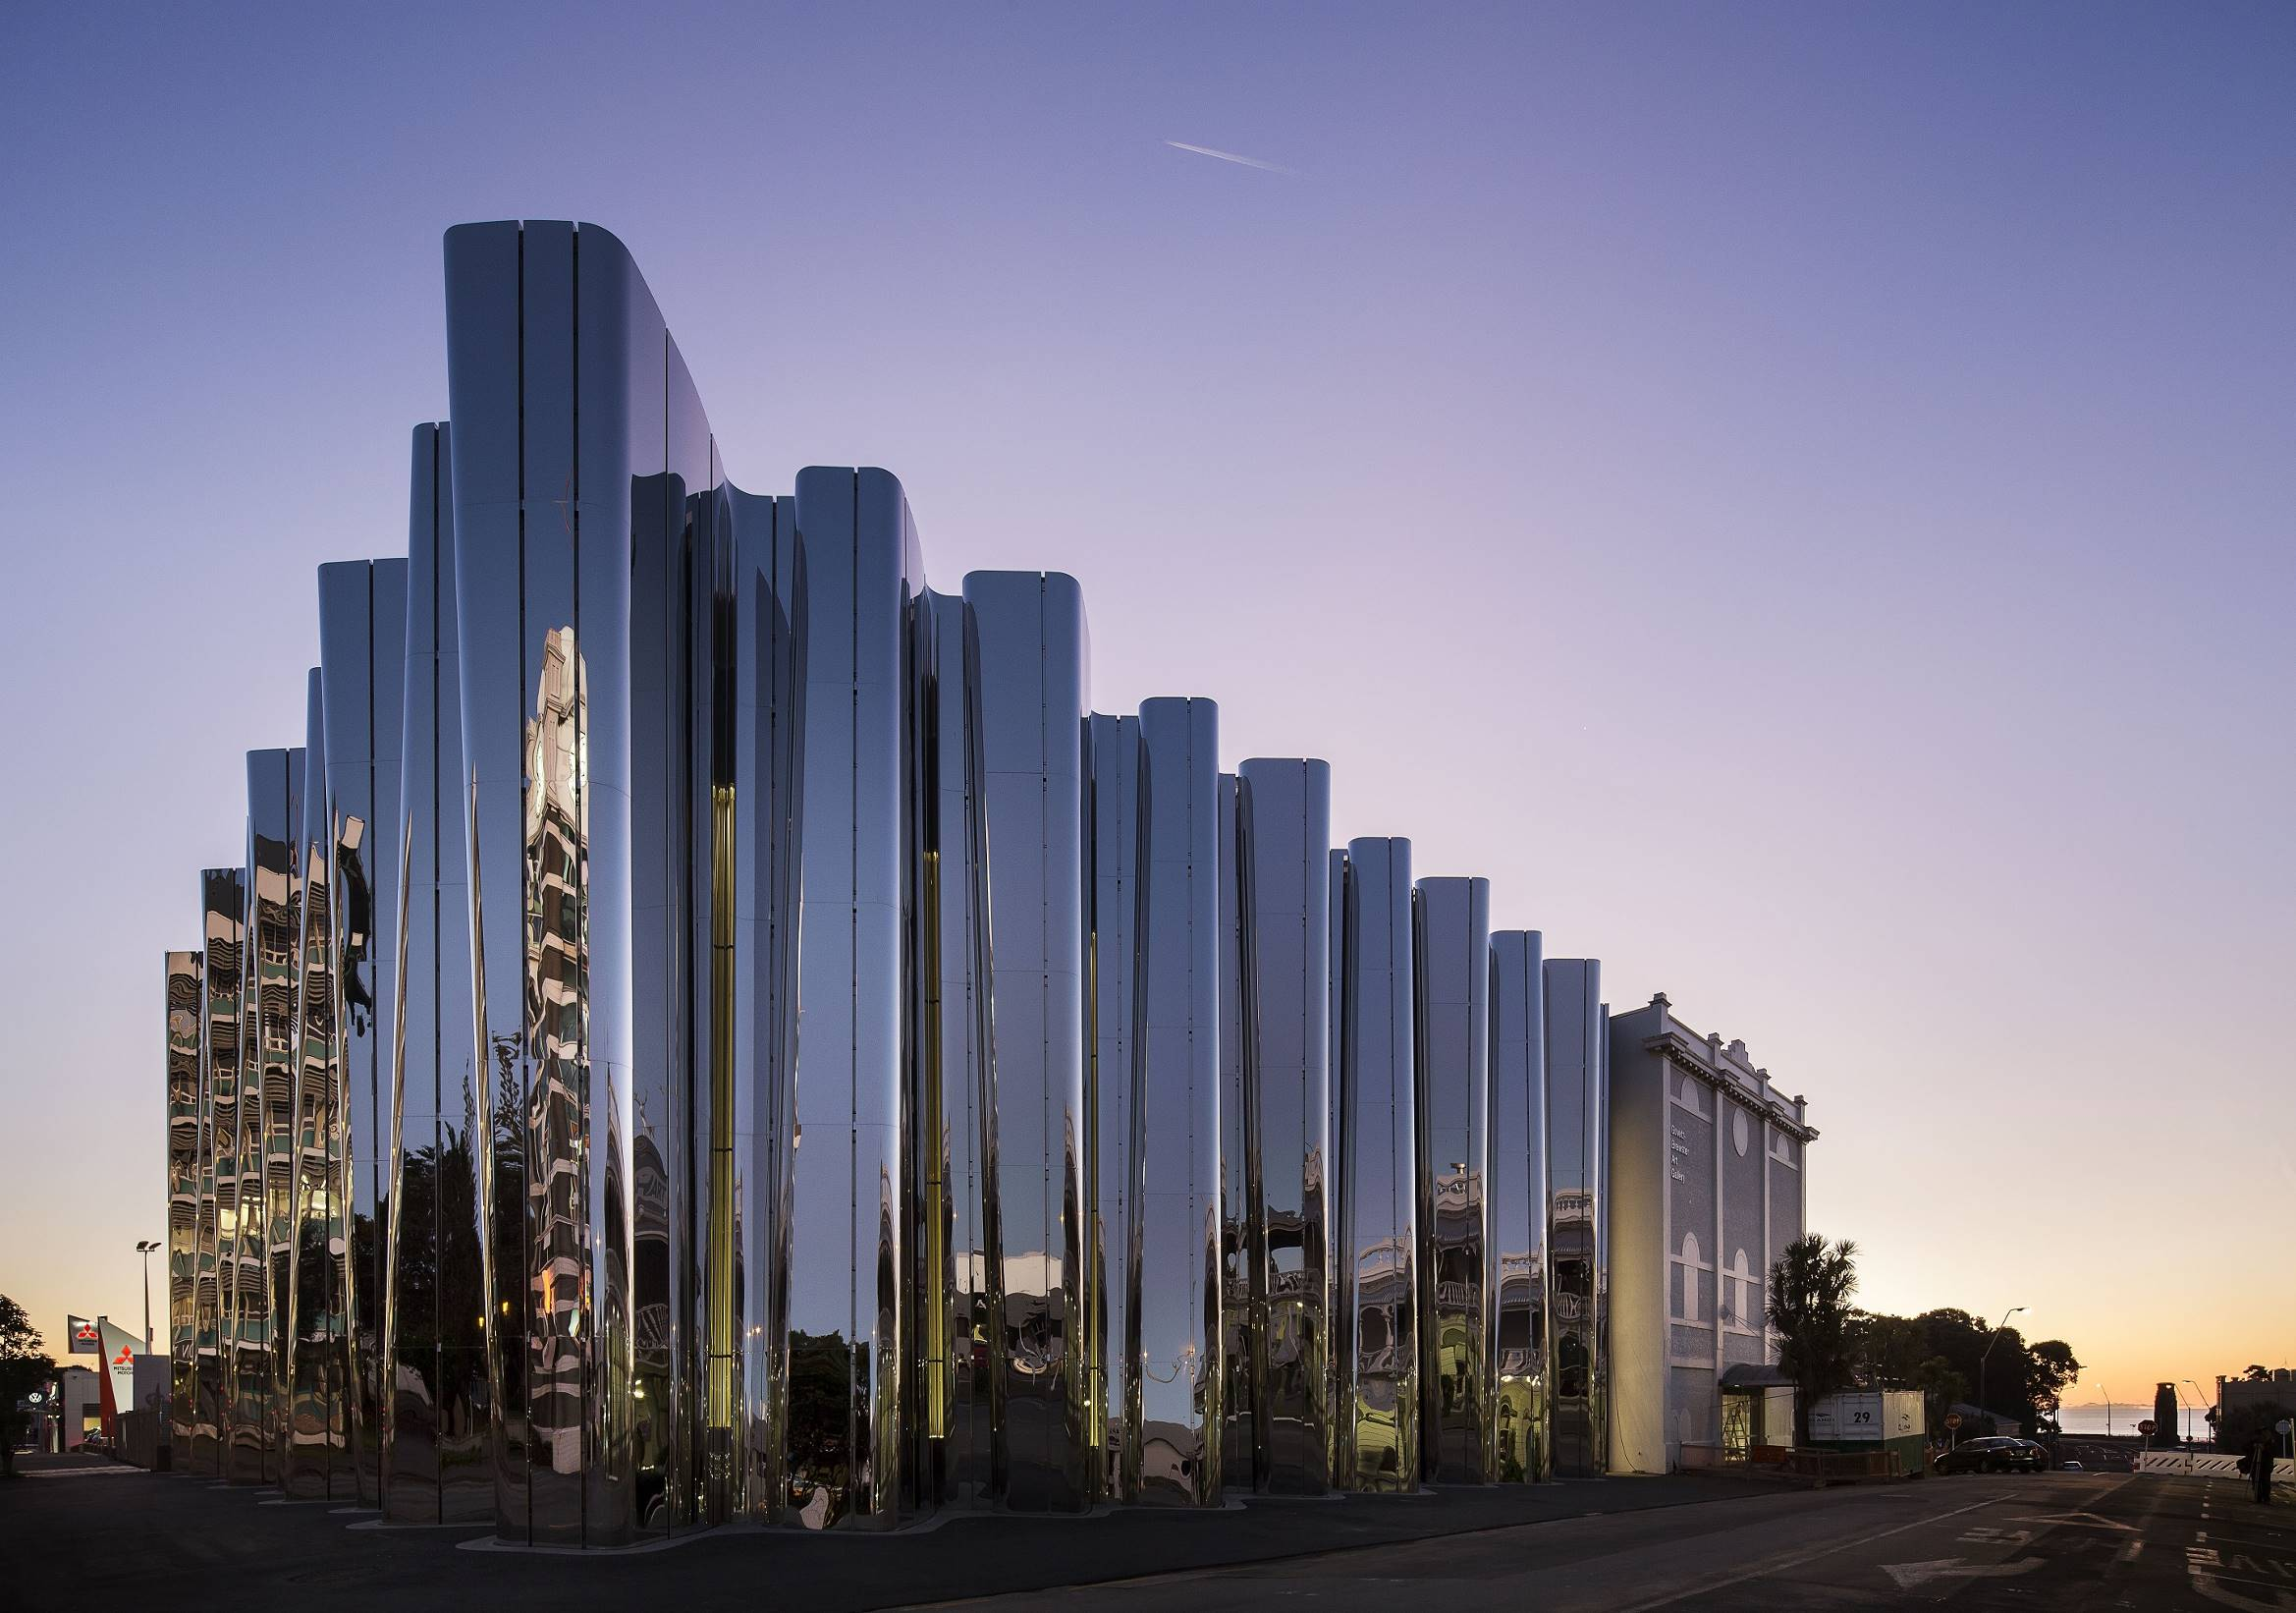 Govett-Brewster Art Gallery & Len Lye Centre